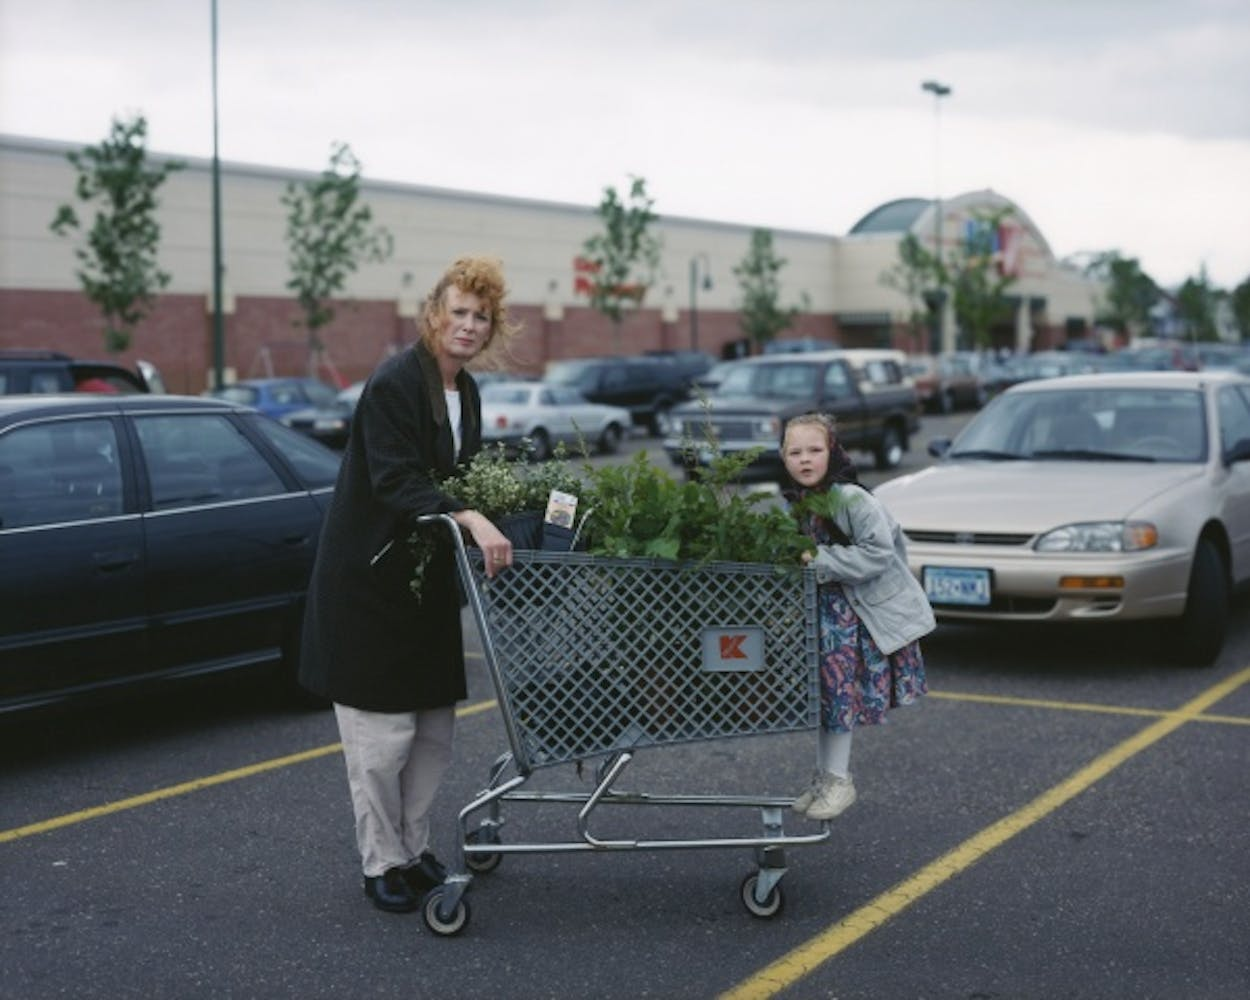 Alec Soth, Mother and Daughter, St. Paul, Minnesota, 1999